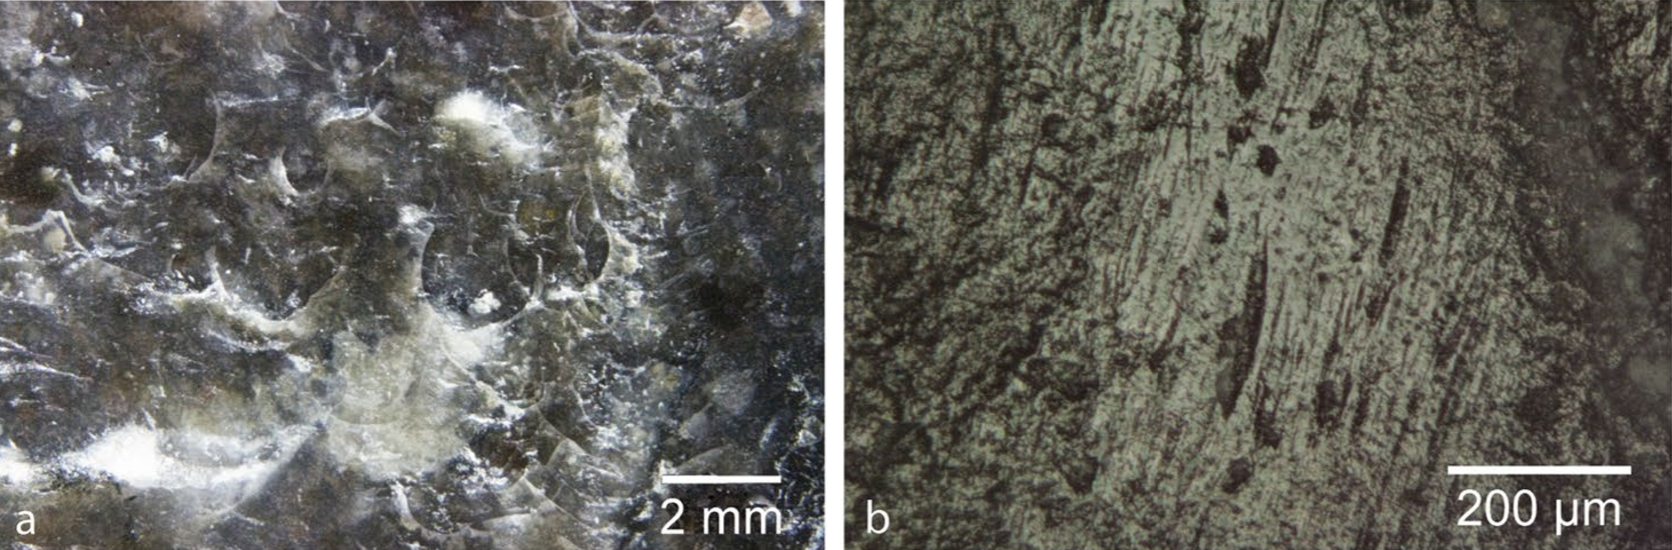 On the left, C-shaped marks from directional percussion are visible with the naked eye. On the right, striations produced by friction show up under a microscope.